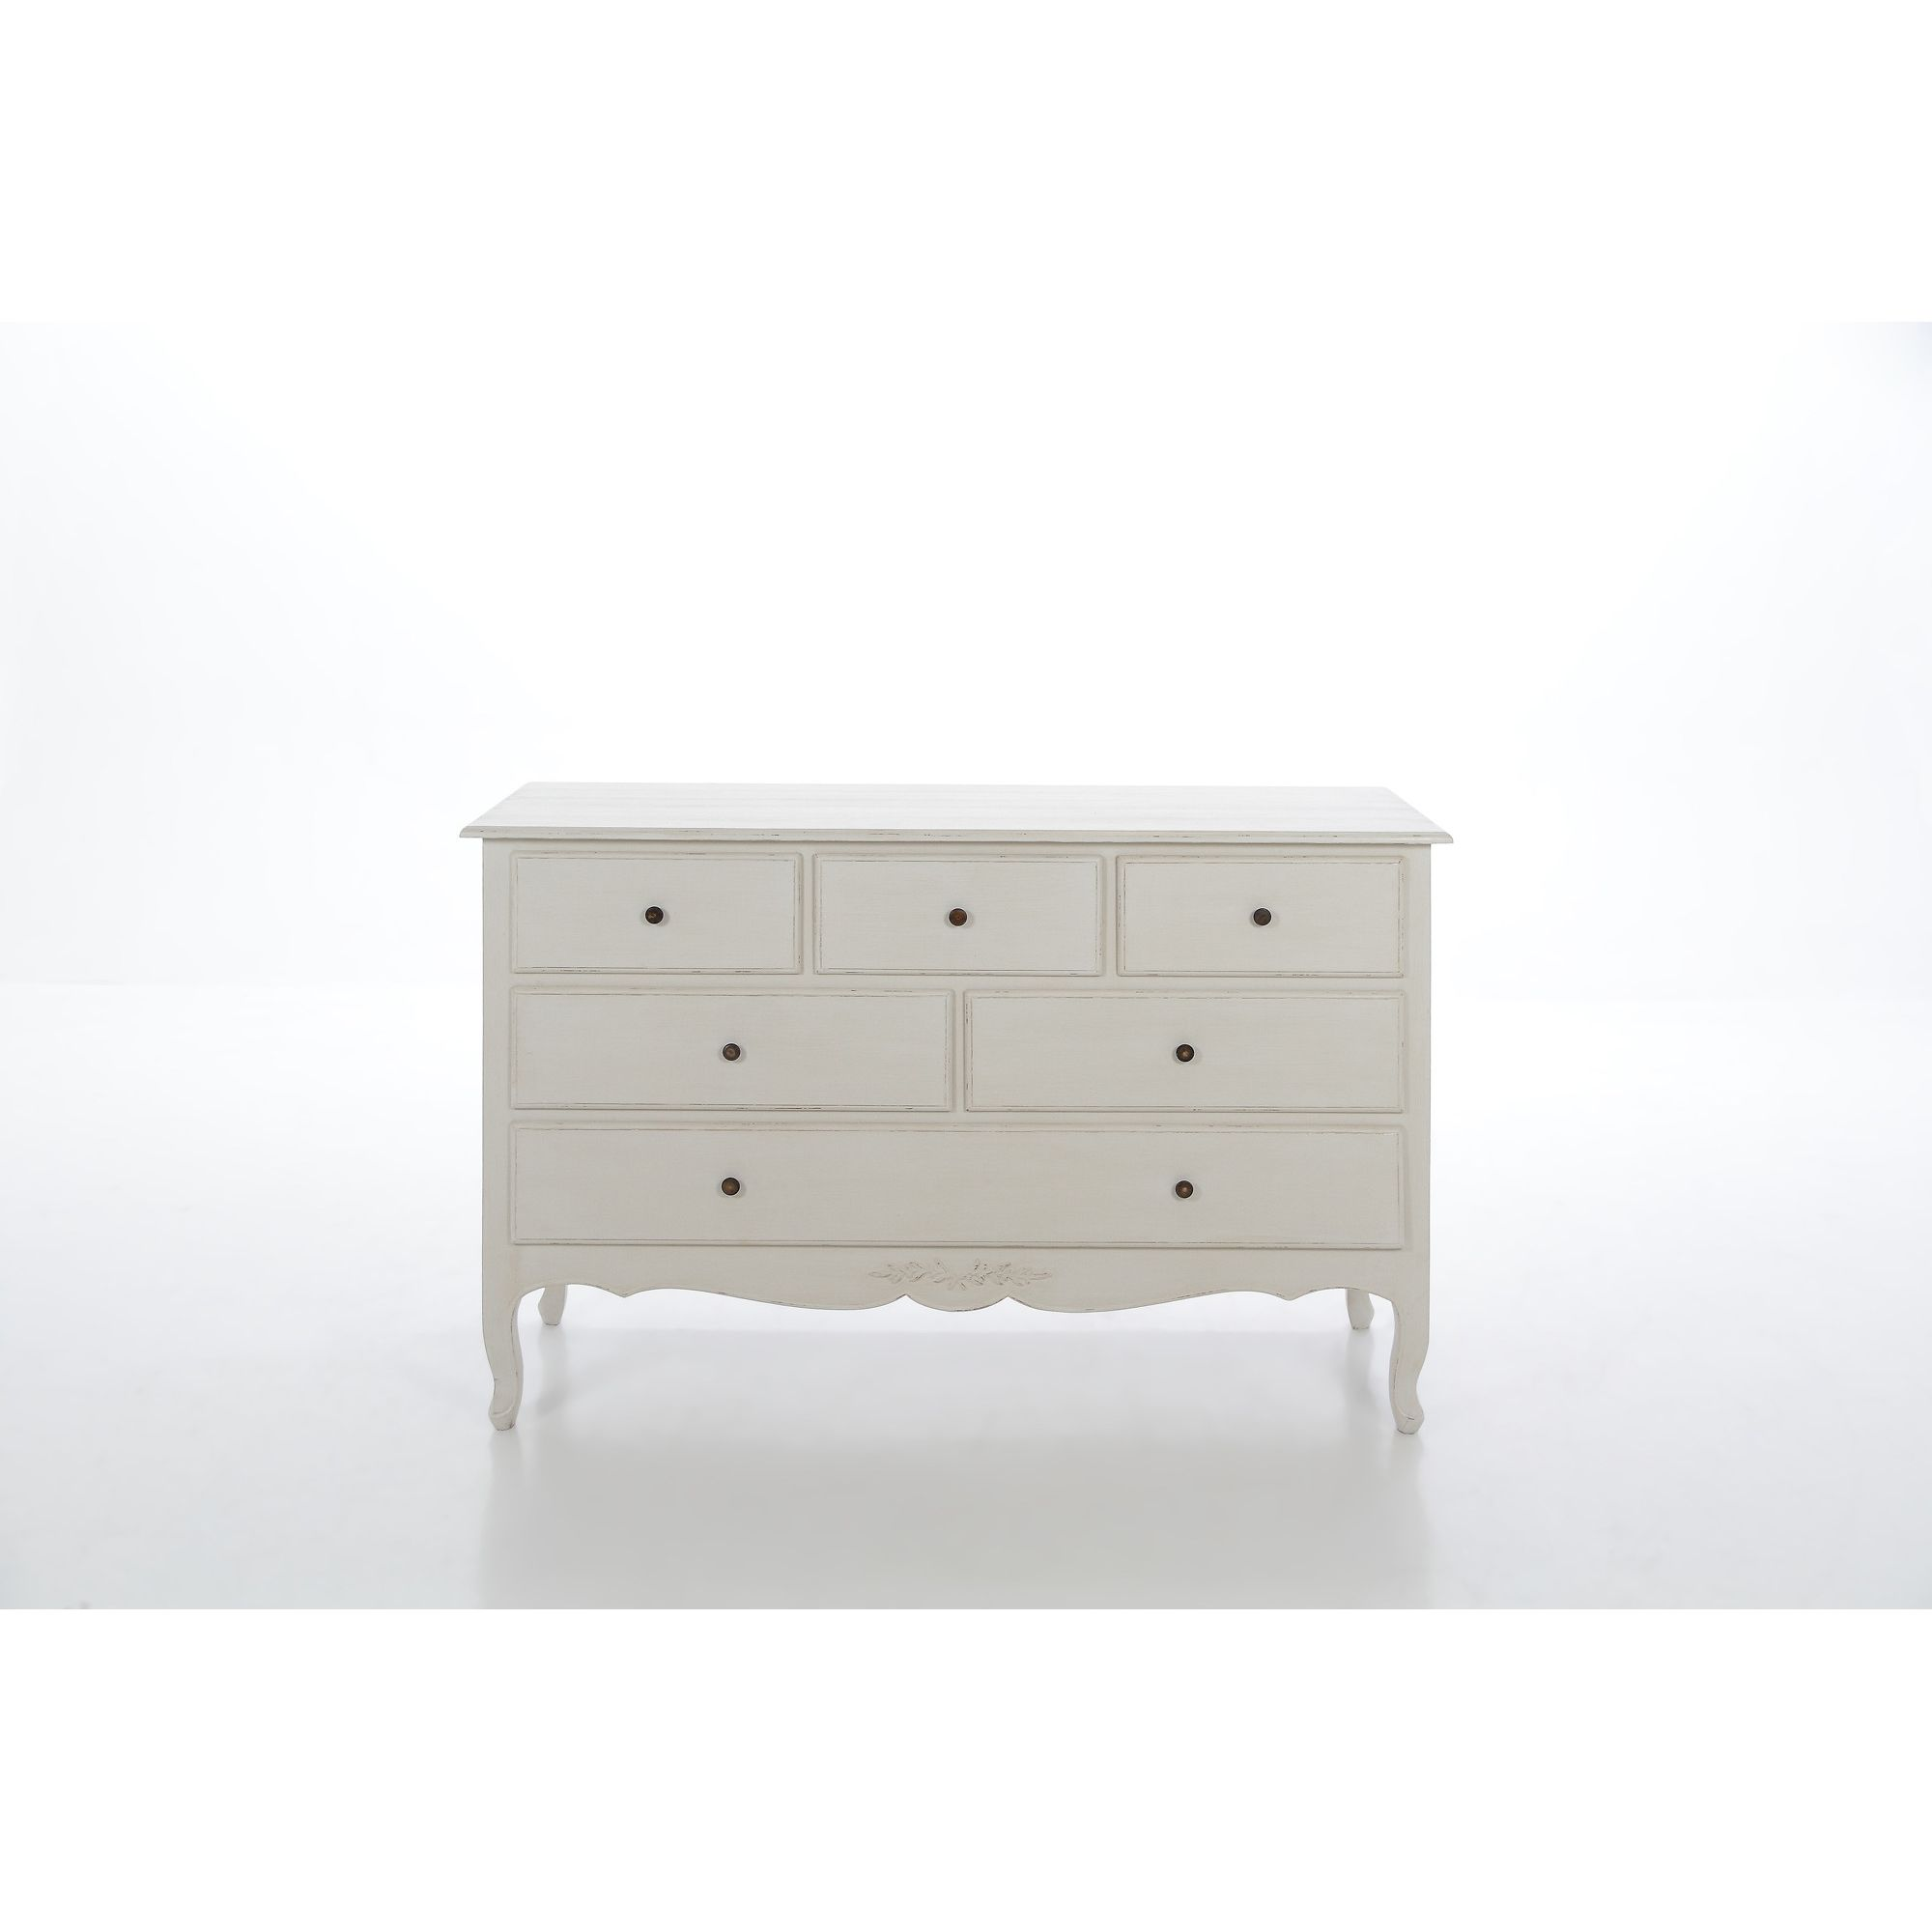 Aspect Design Louise 6 Drawer Chest at Tesco Direct